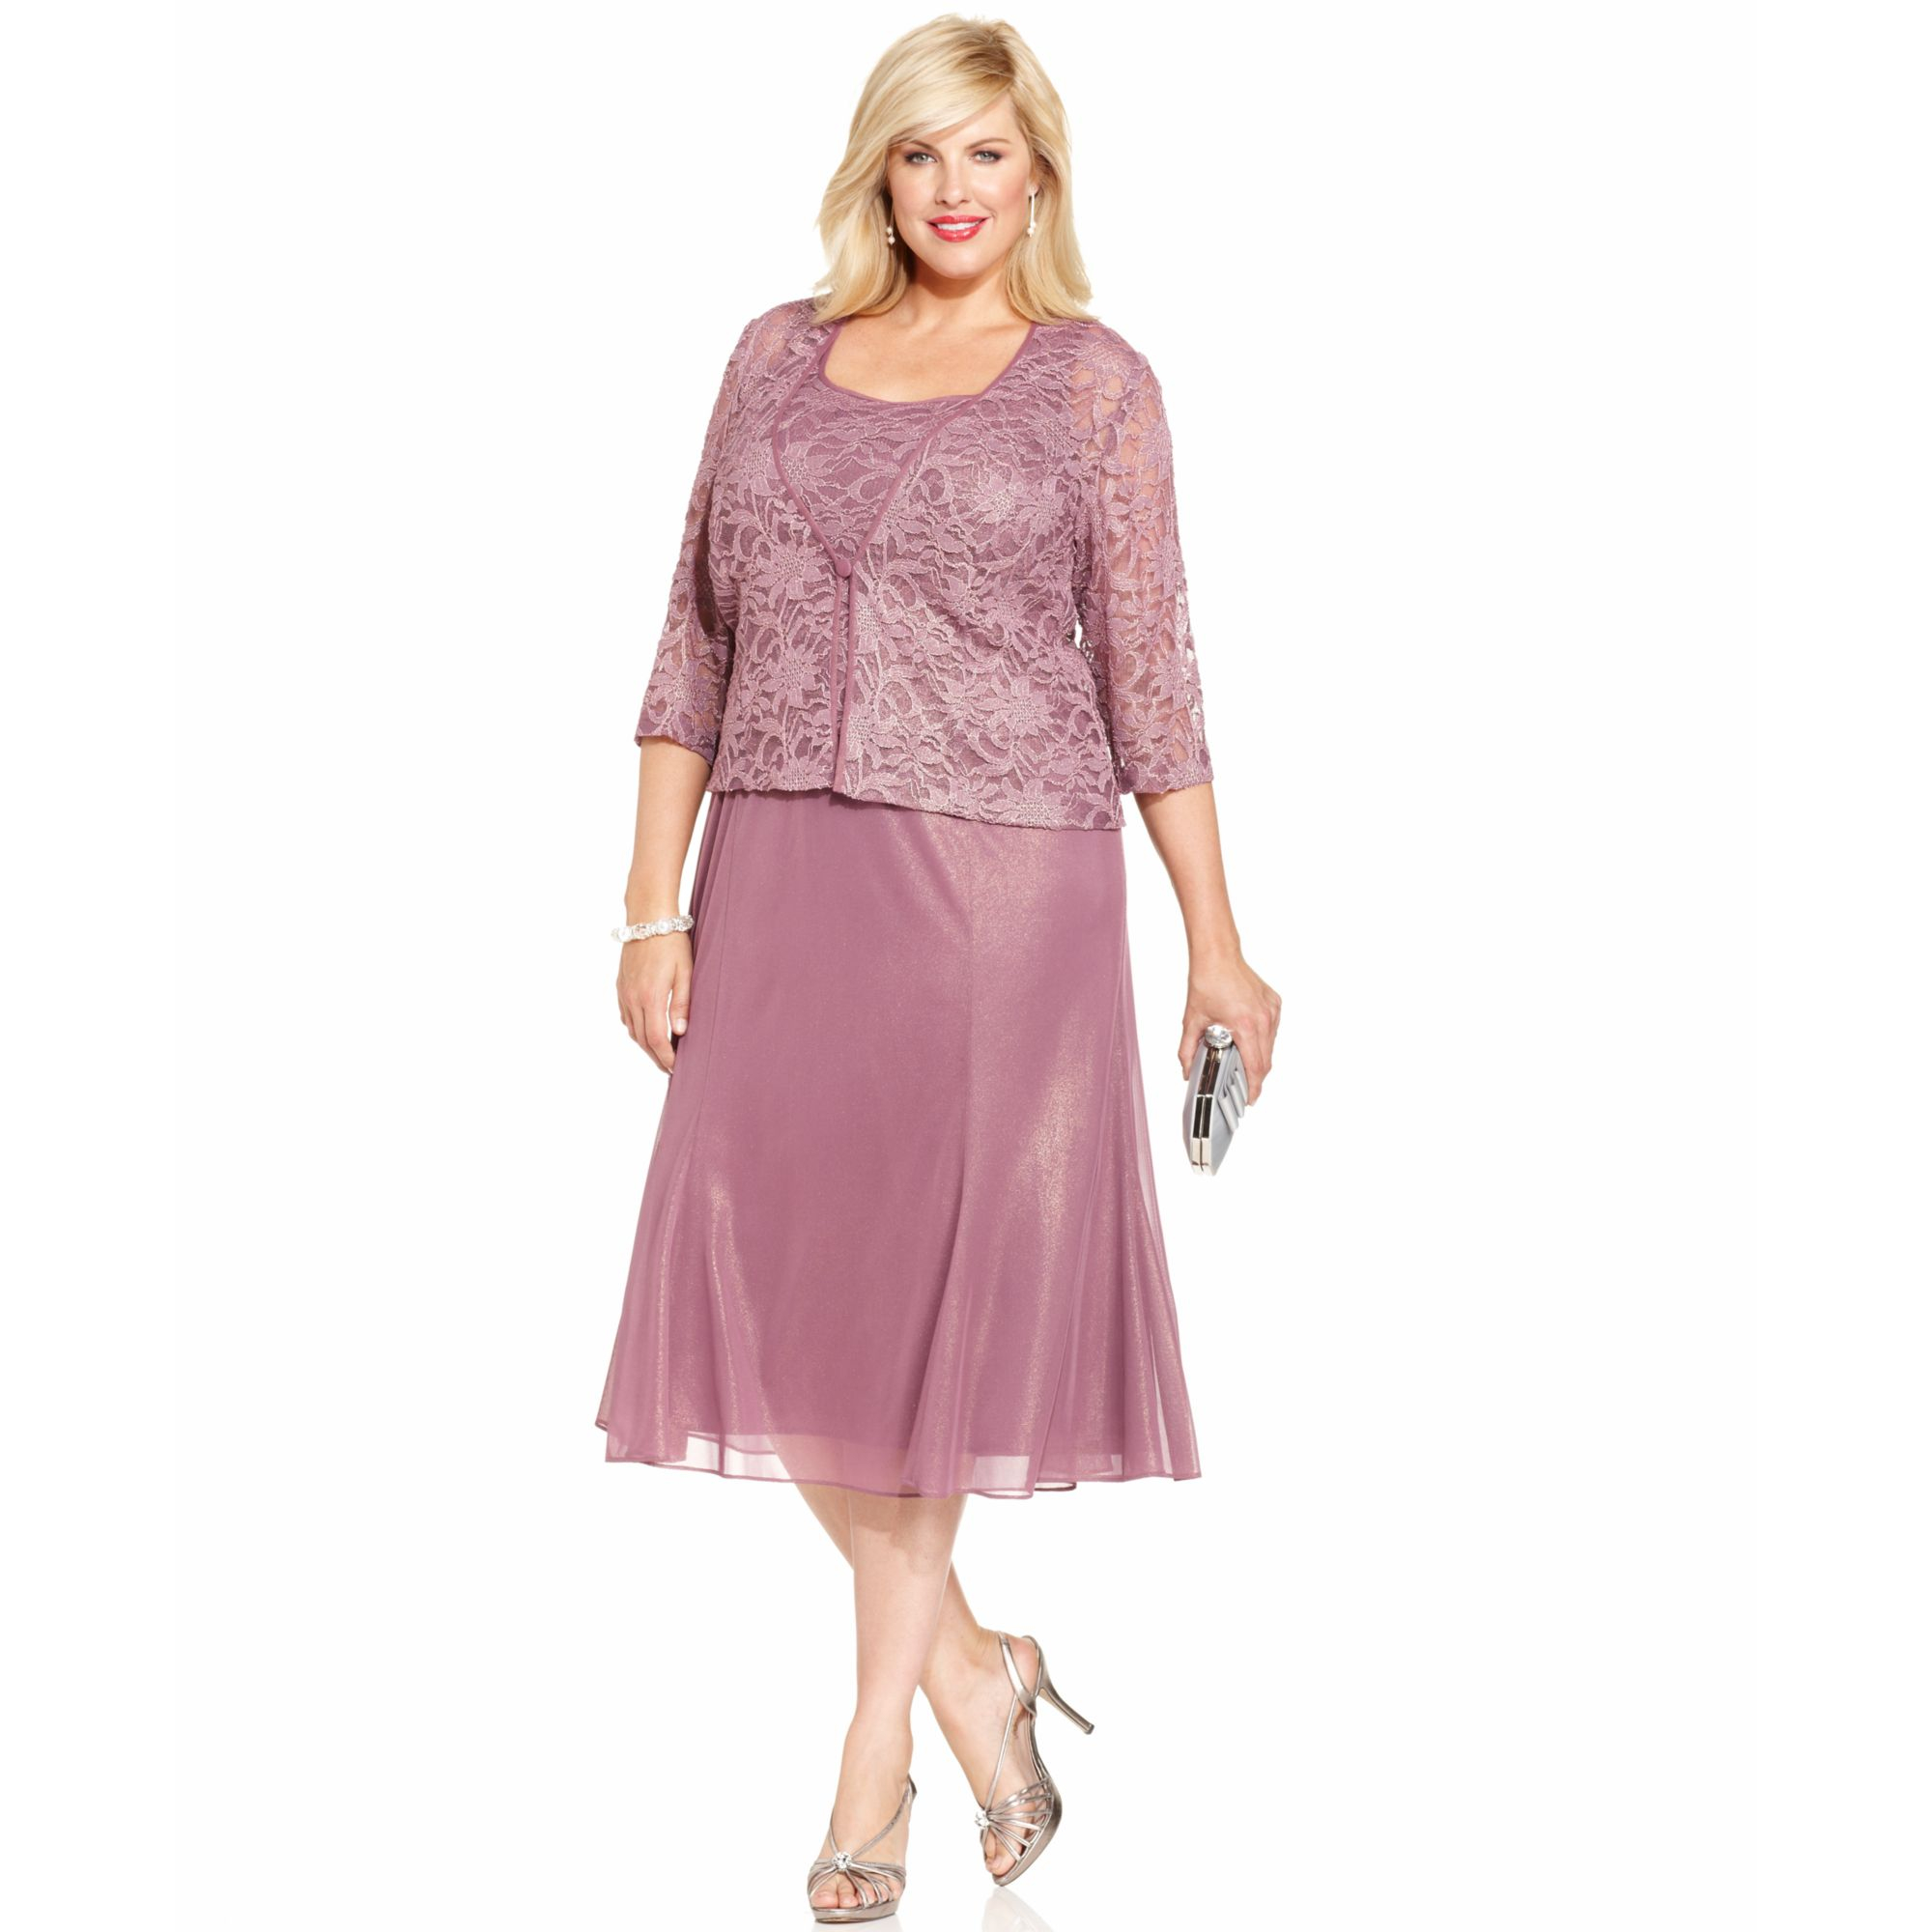 Redmurcianadesemillas Macys Plus Size Clothes